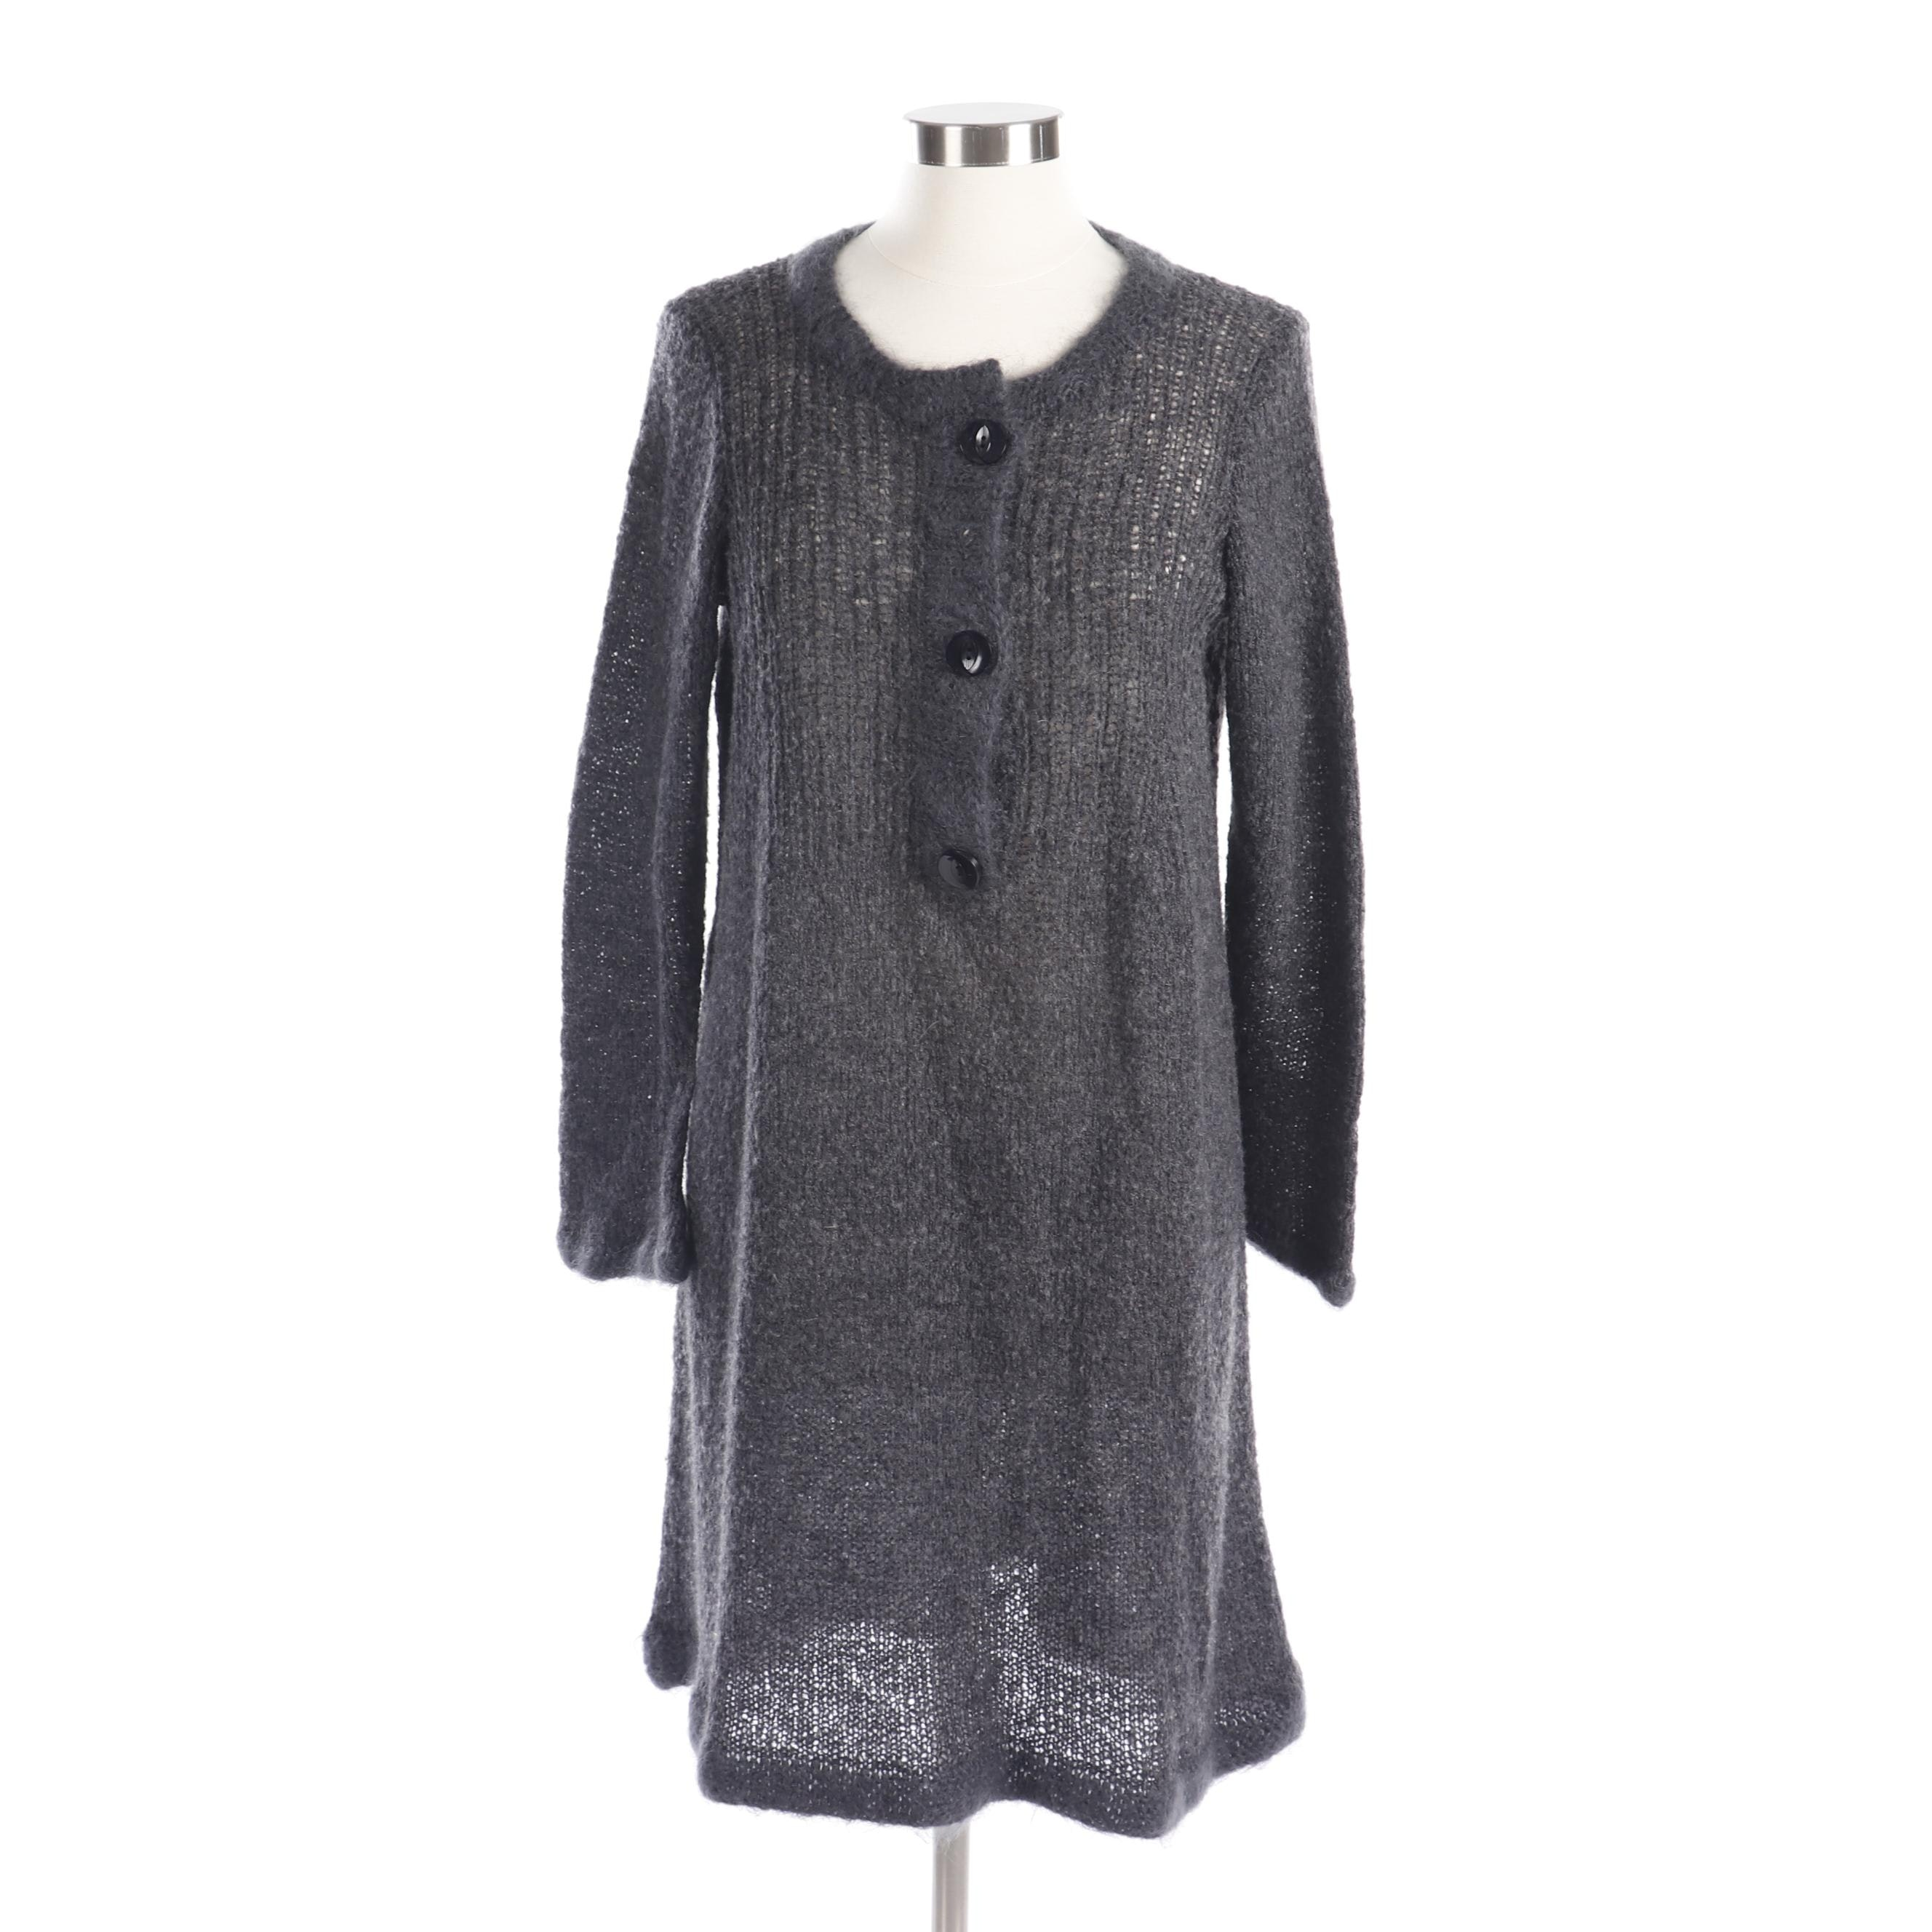 Women's Robin Richman Grey Wool Knit Sweater Dress